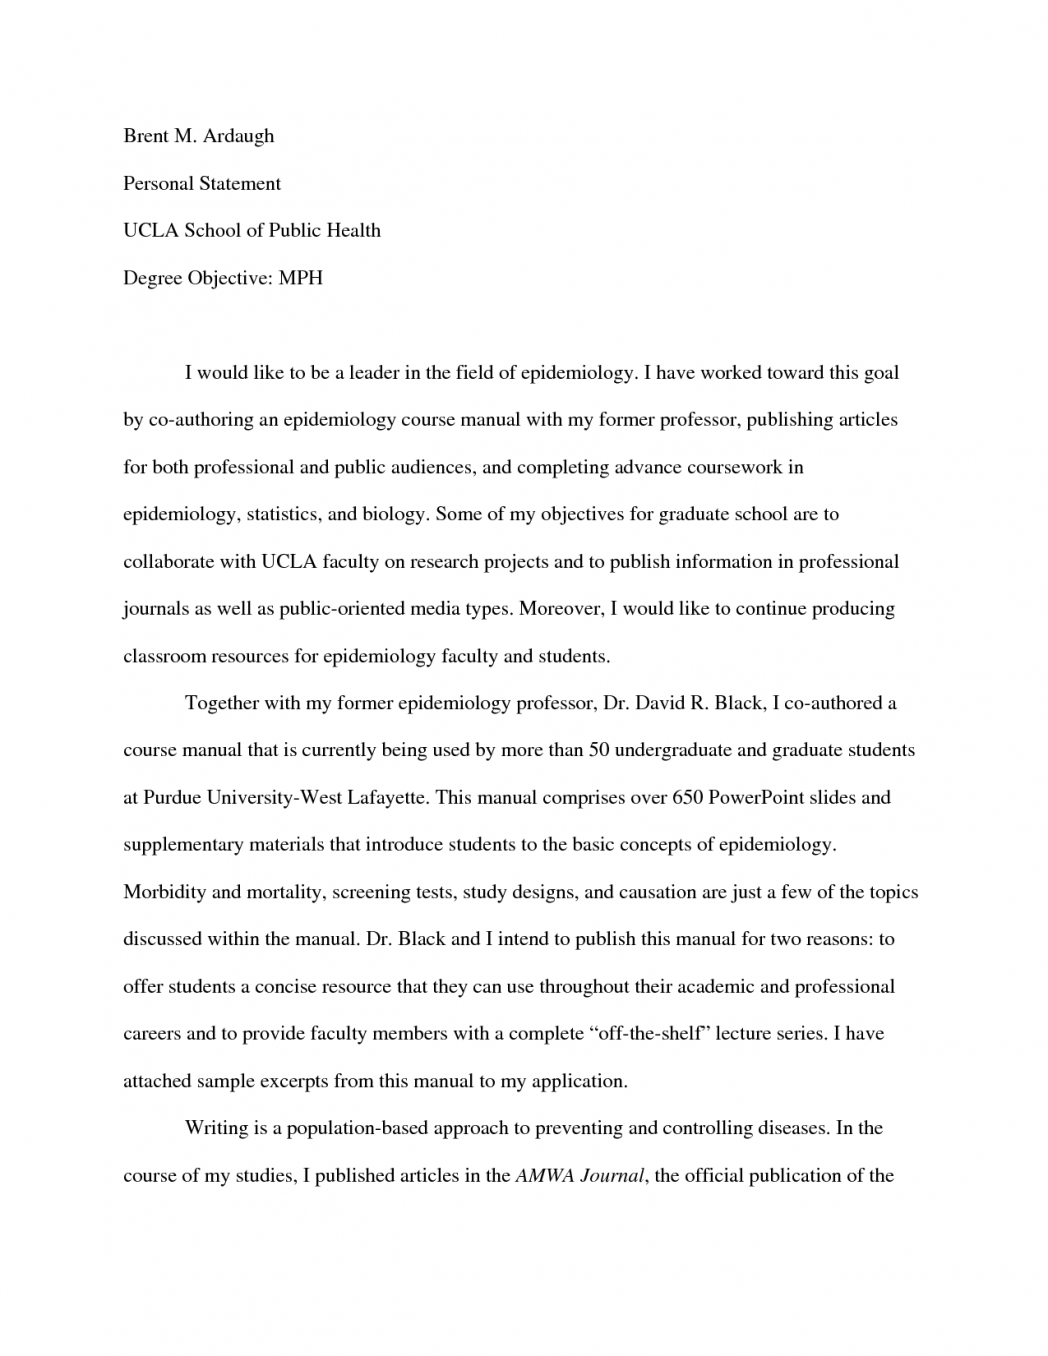 006 Vcu Personal Statement Essay Example Application Department Of Occupational Therapy Tradition Ucla Template Sqy College Prompts Remarkable Full